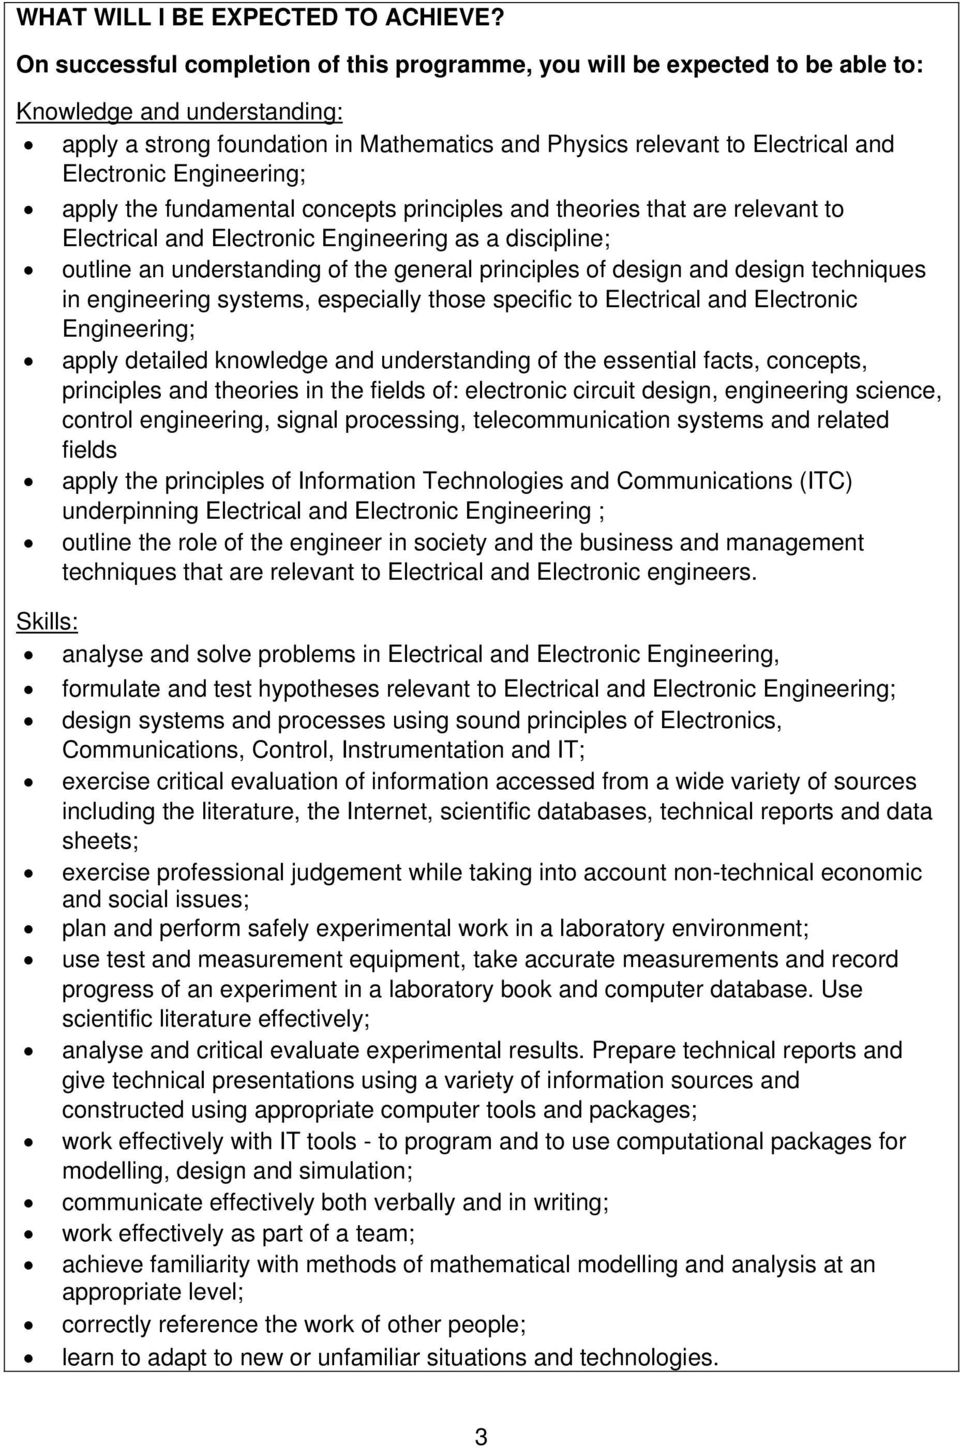 Engineering; apply the fundamental concepts principles and theories that are relevant to Electrical and Electronic Engineering as a discipline; outline an understanding of the general principles of